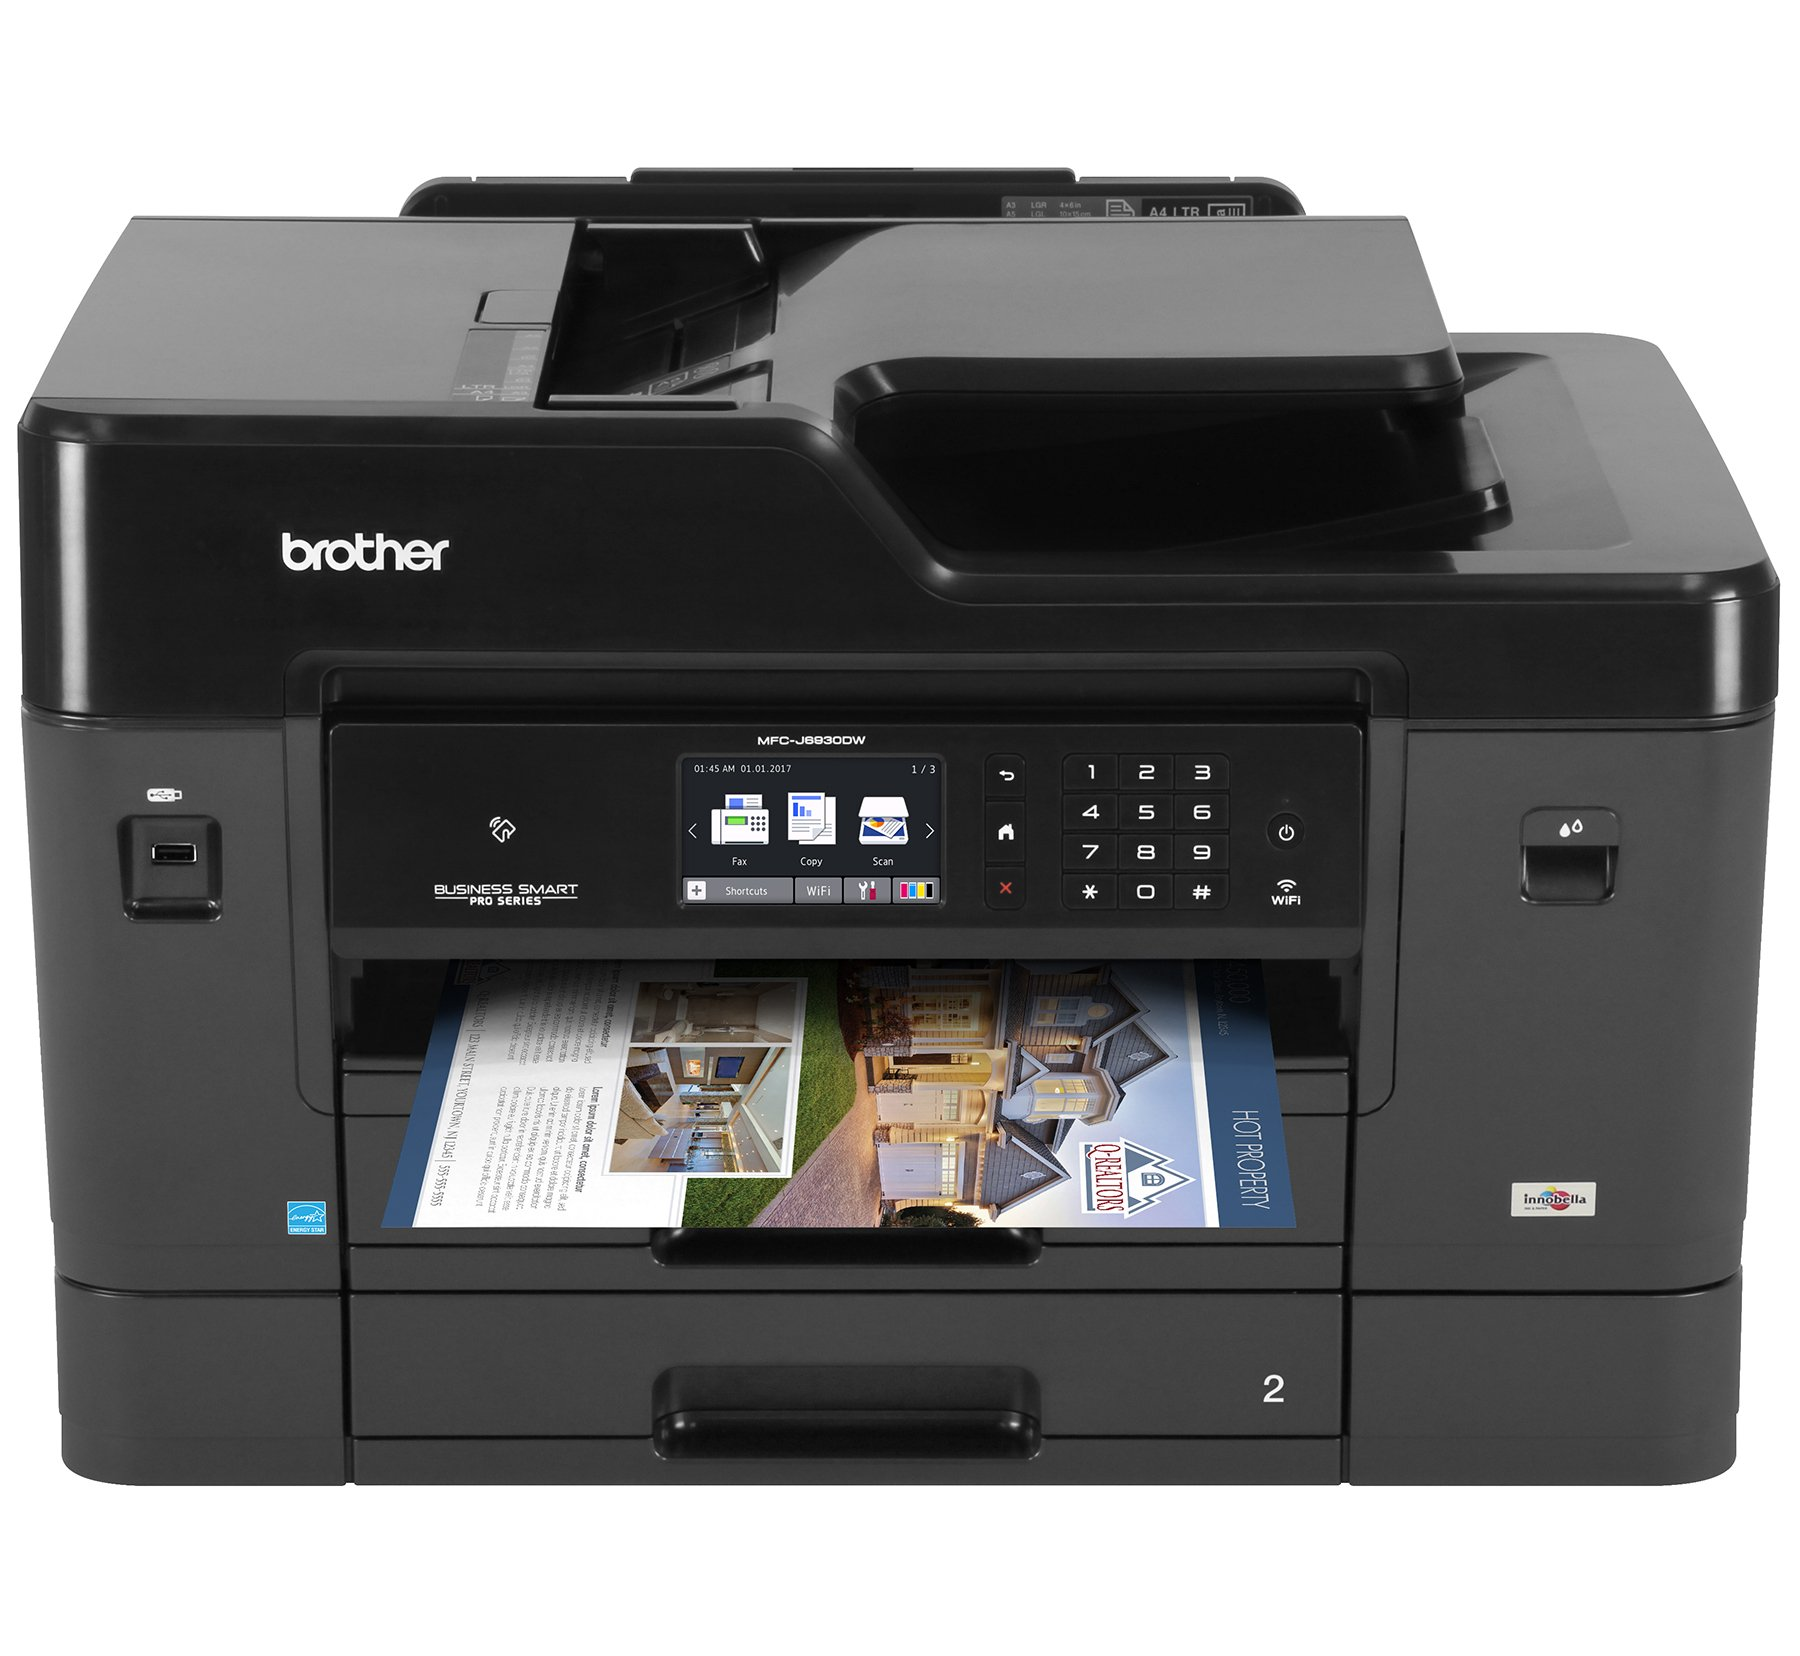 Brother Printer MFCJ6930DW Wireless Color Printer with Scanner, Copier & Fax, Amazon Dash Replenishment Enabled by Brother